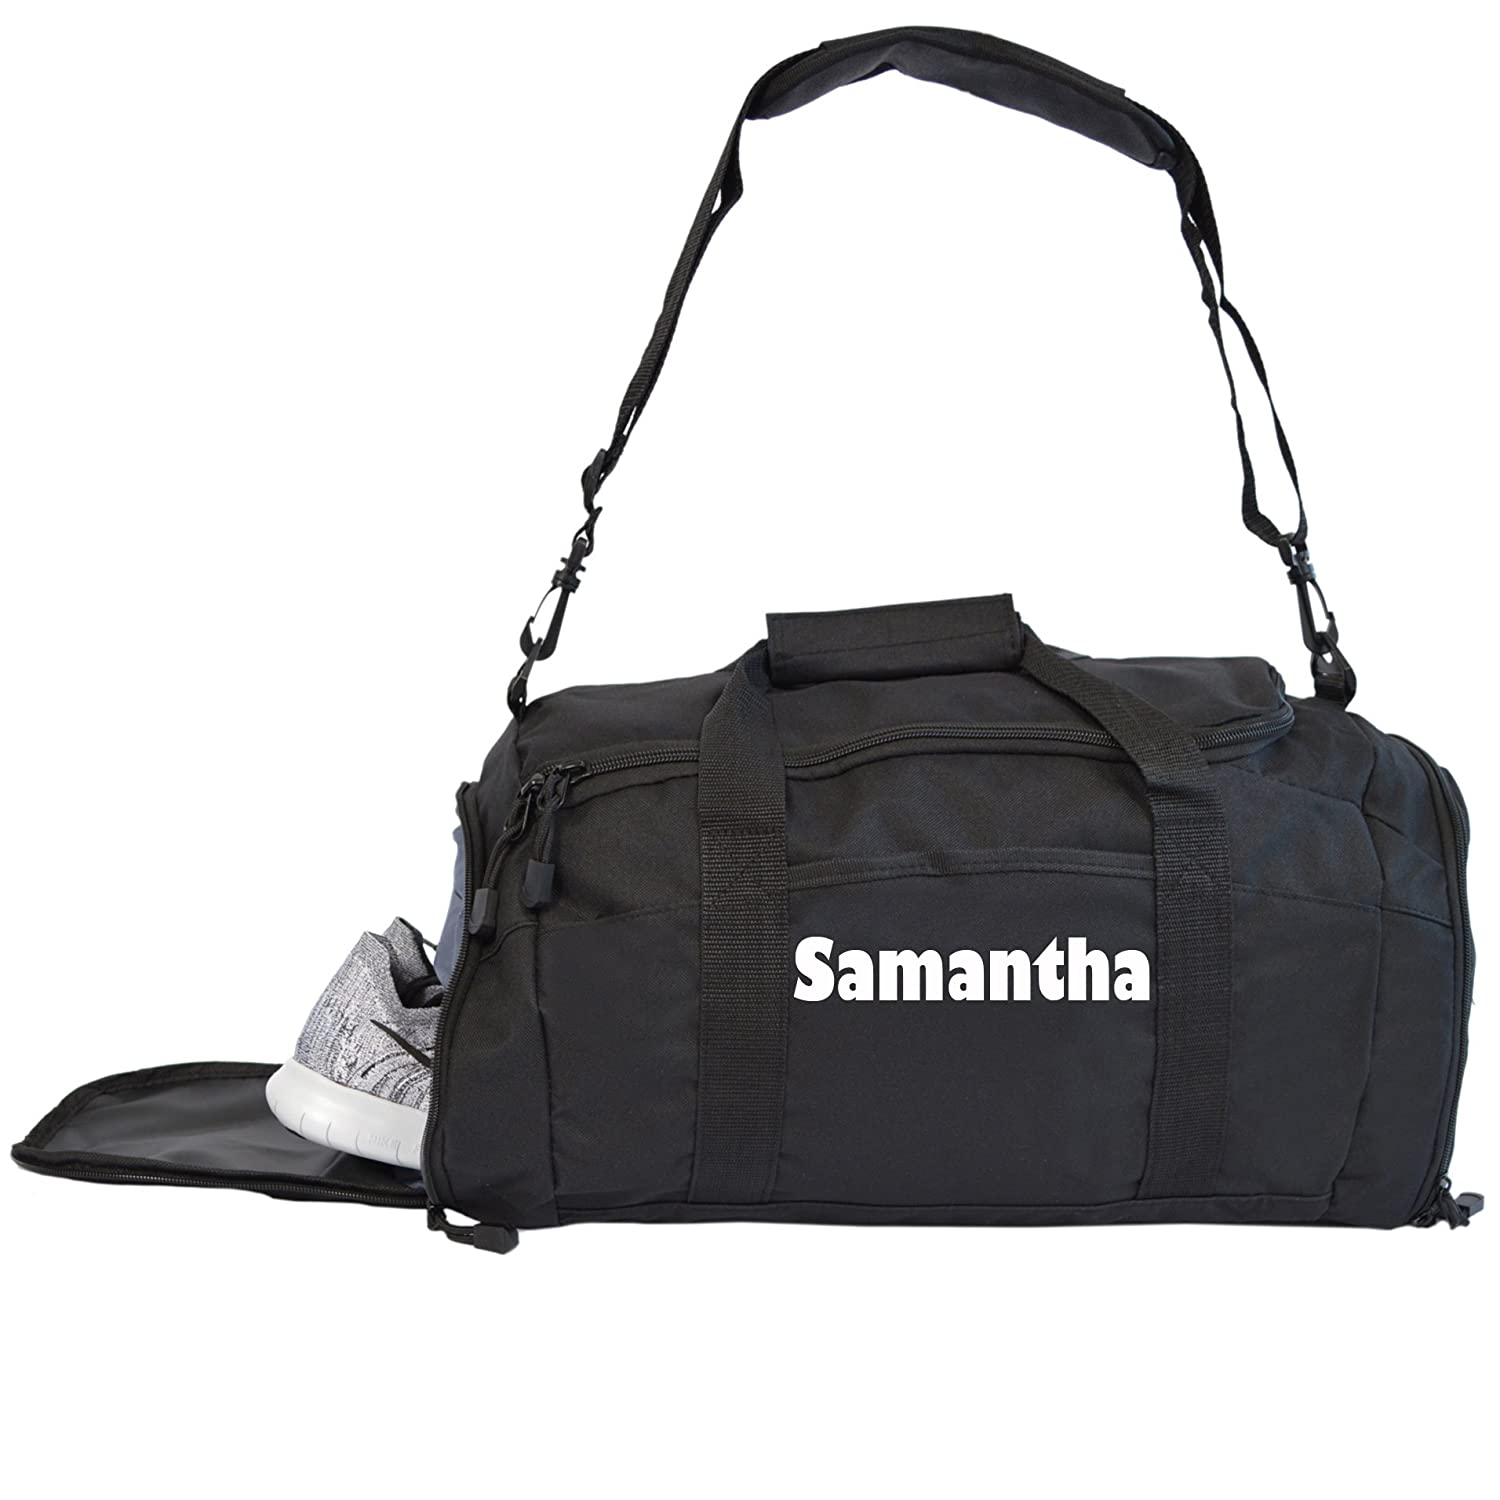 Kaysees Personalized Gym Bag With Zippered Pockets and Player Name